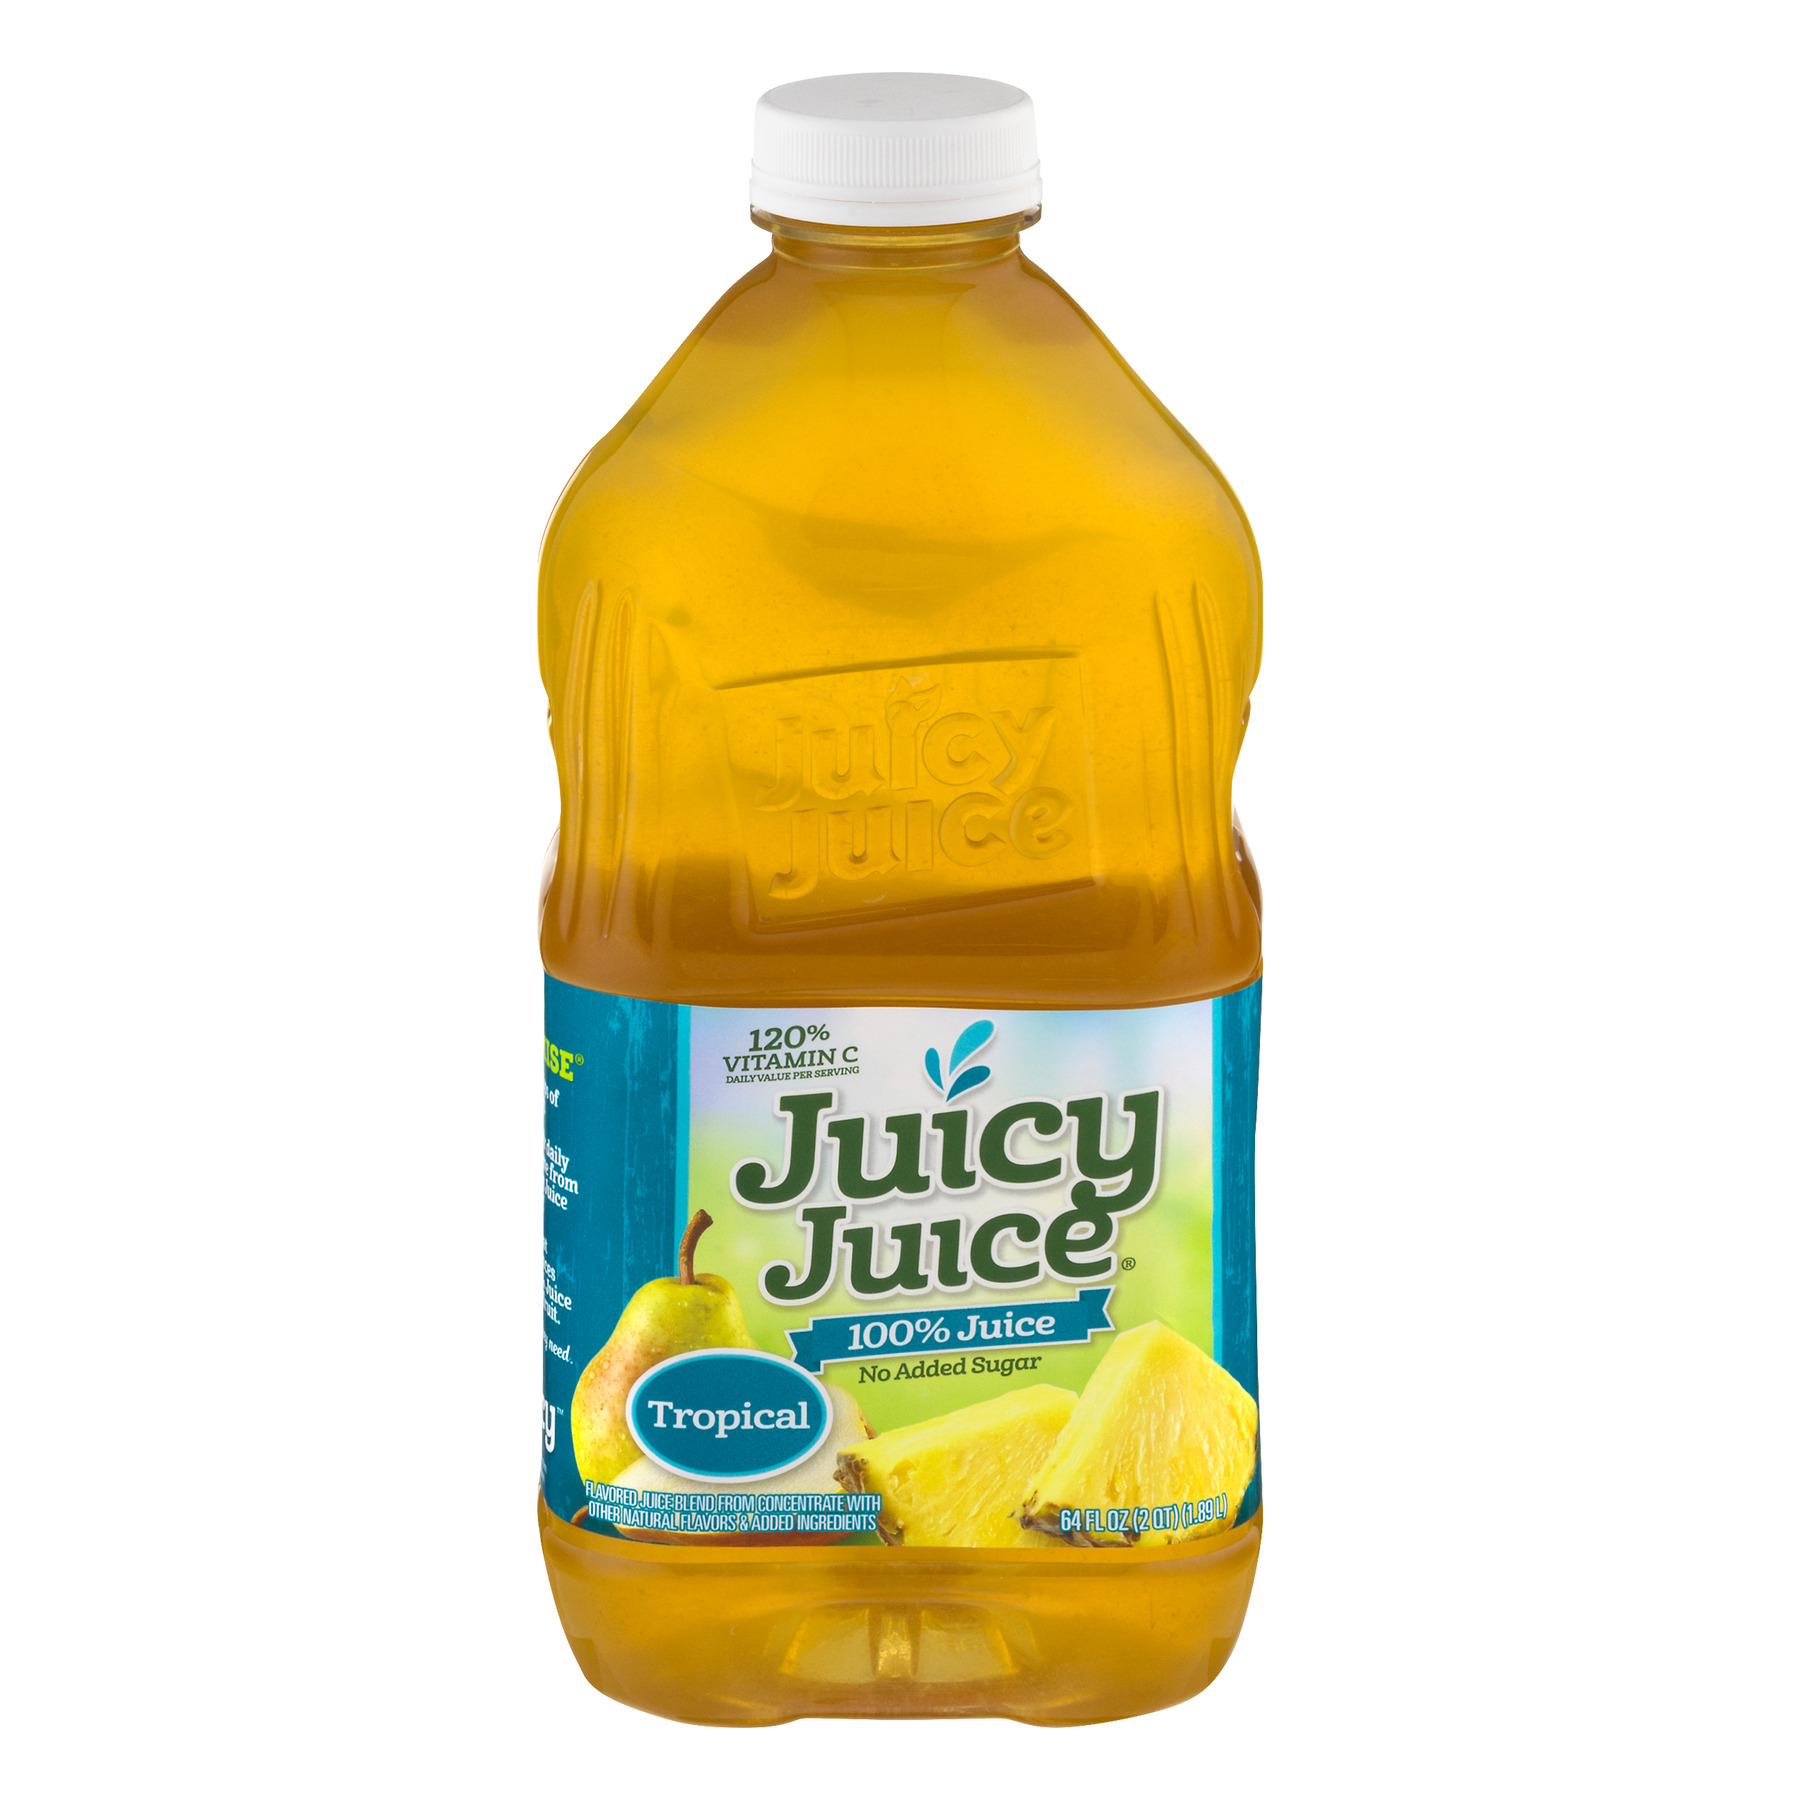 Juicy Juice 100% Juice, Tropical, 64 Fl Oz, 1 Count